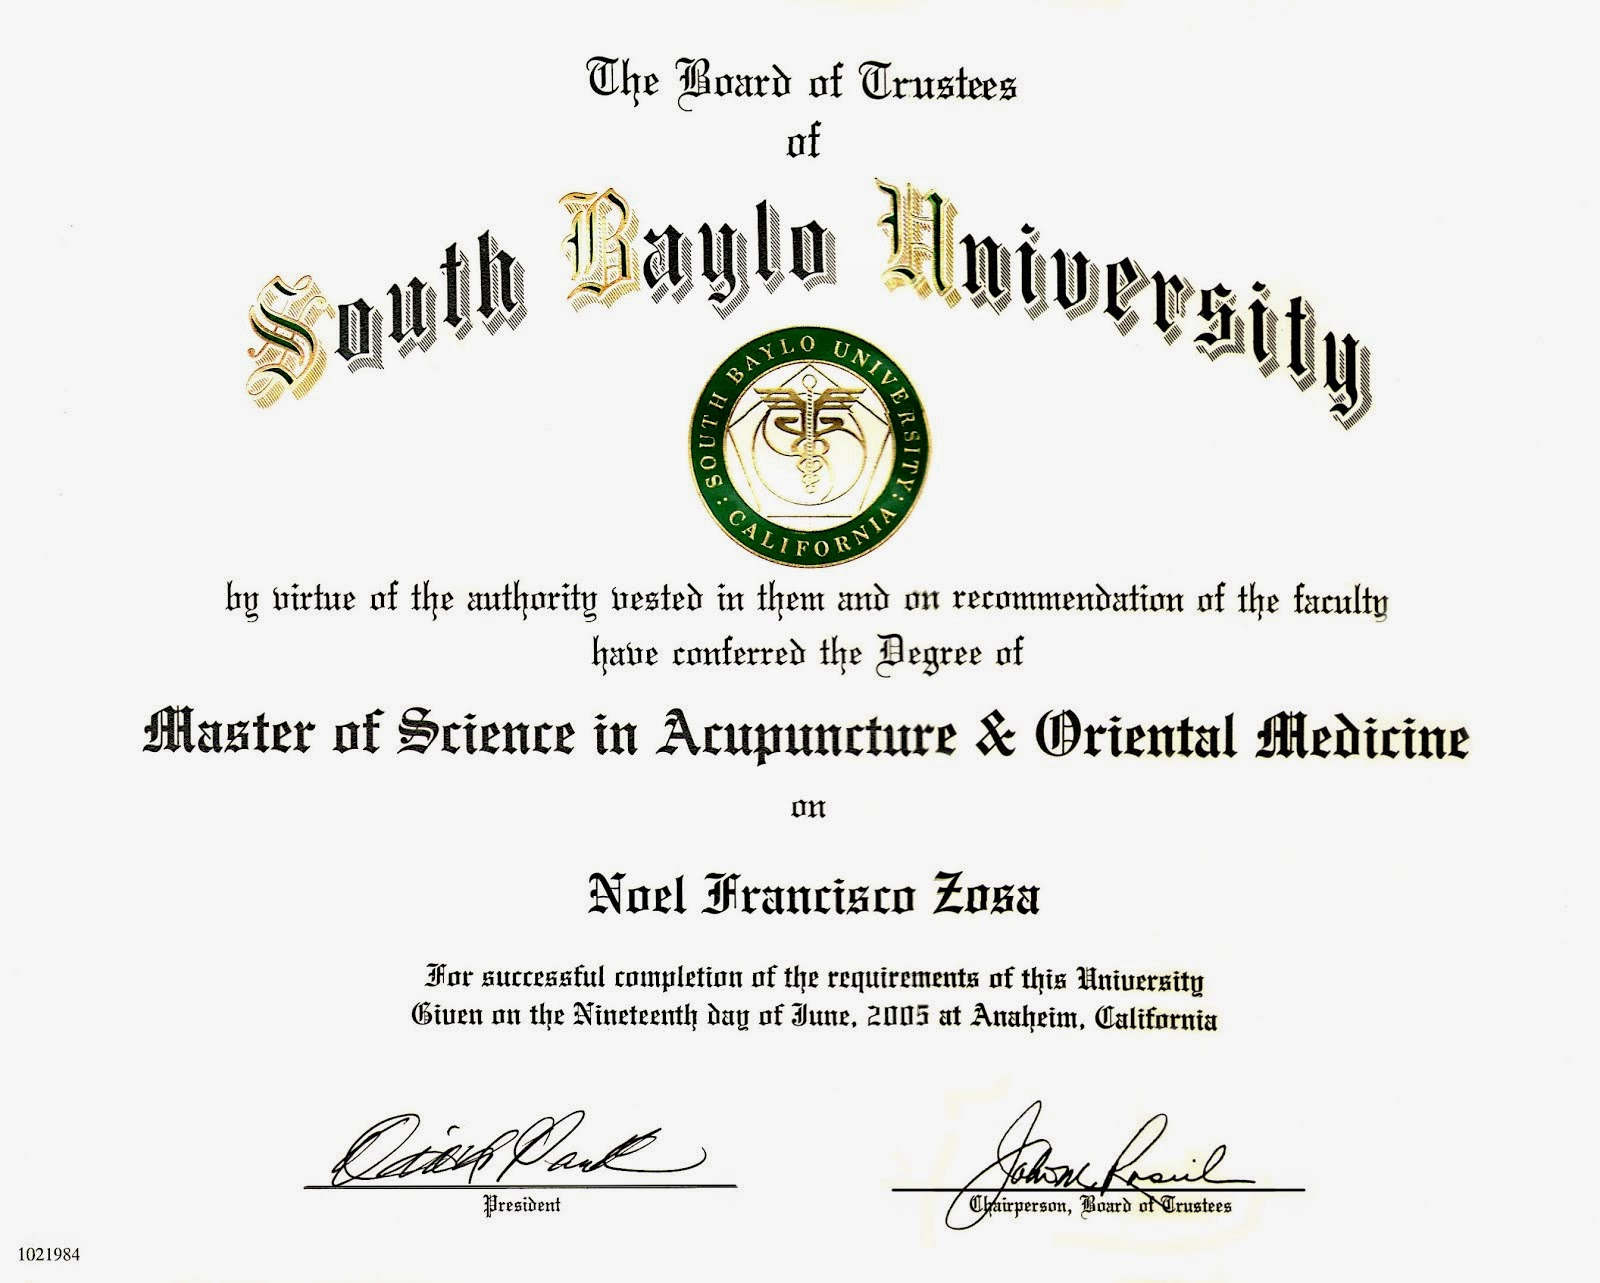 Graduate of South Baylo University 2005